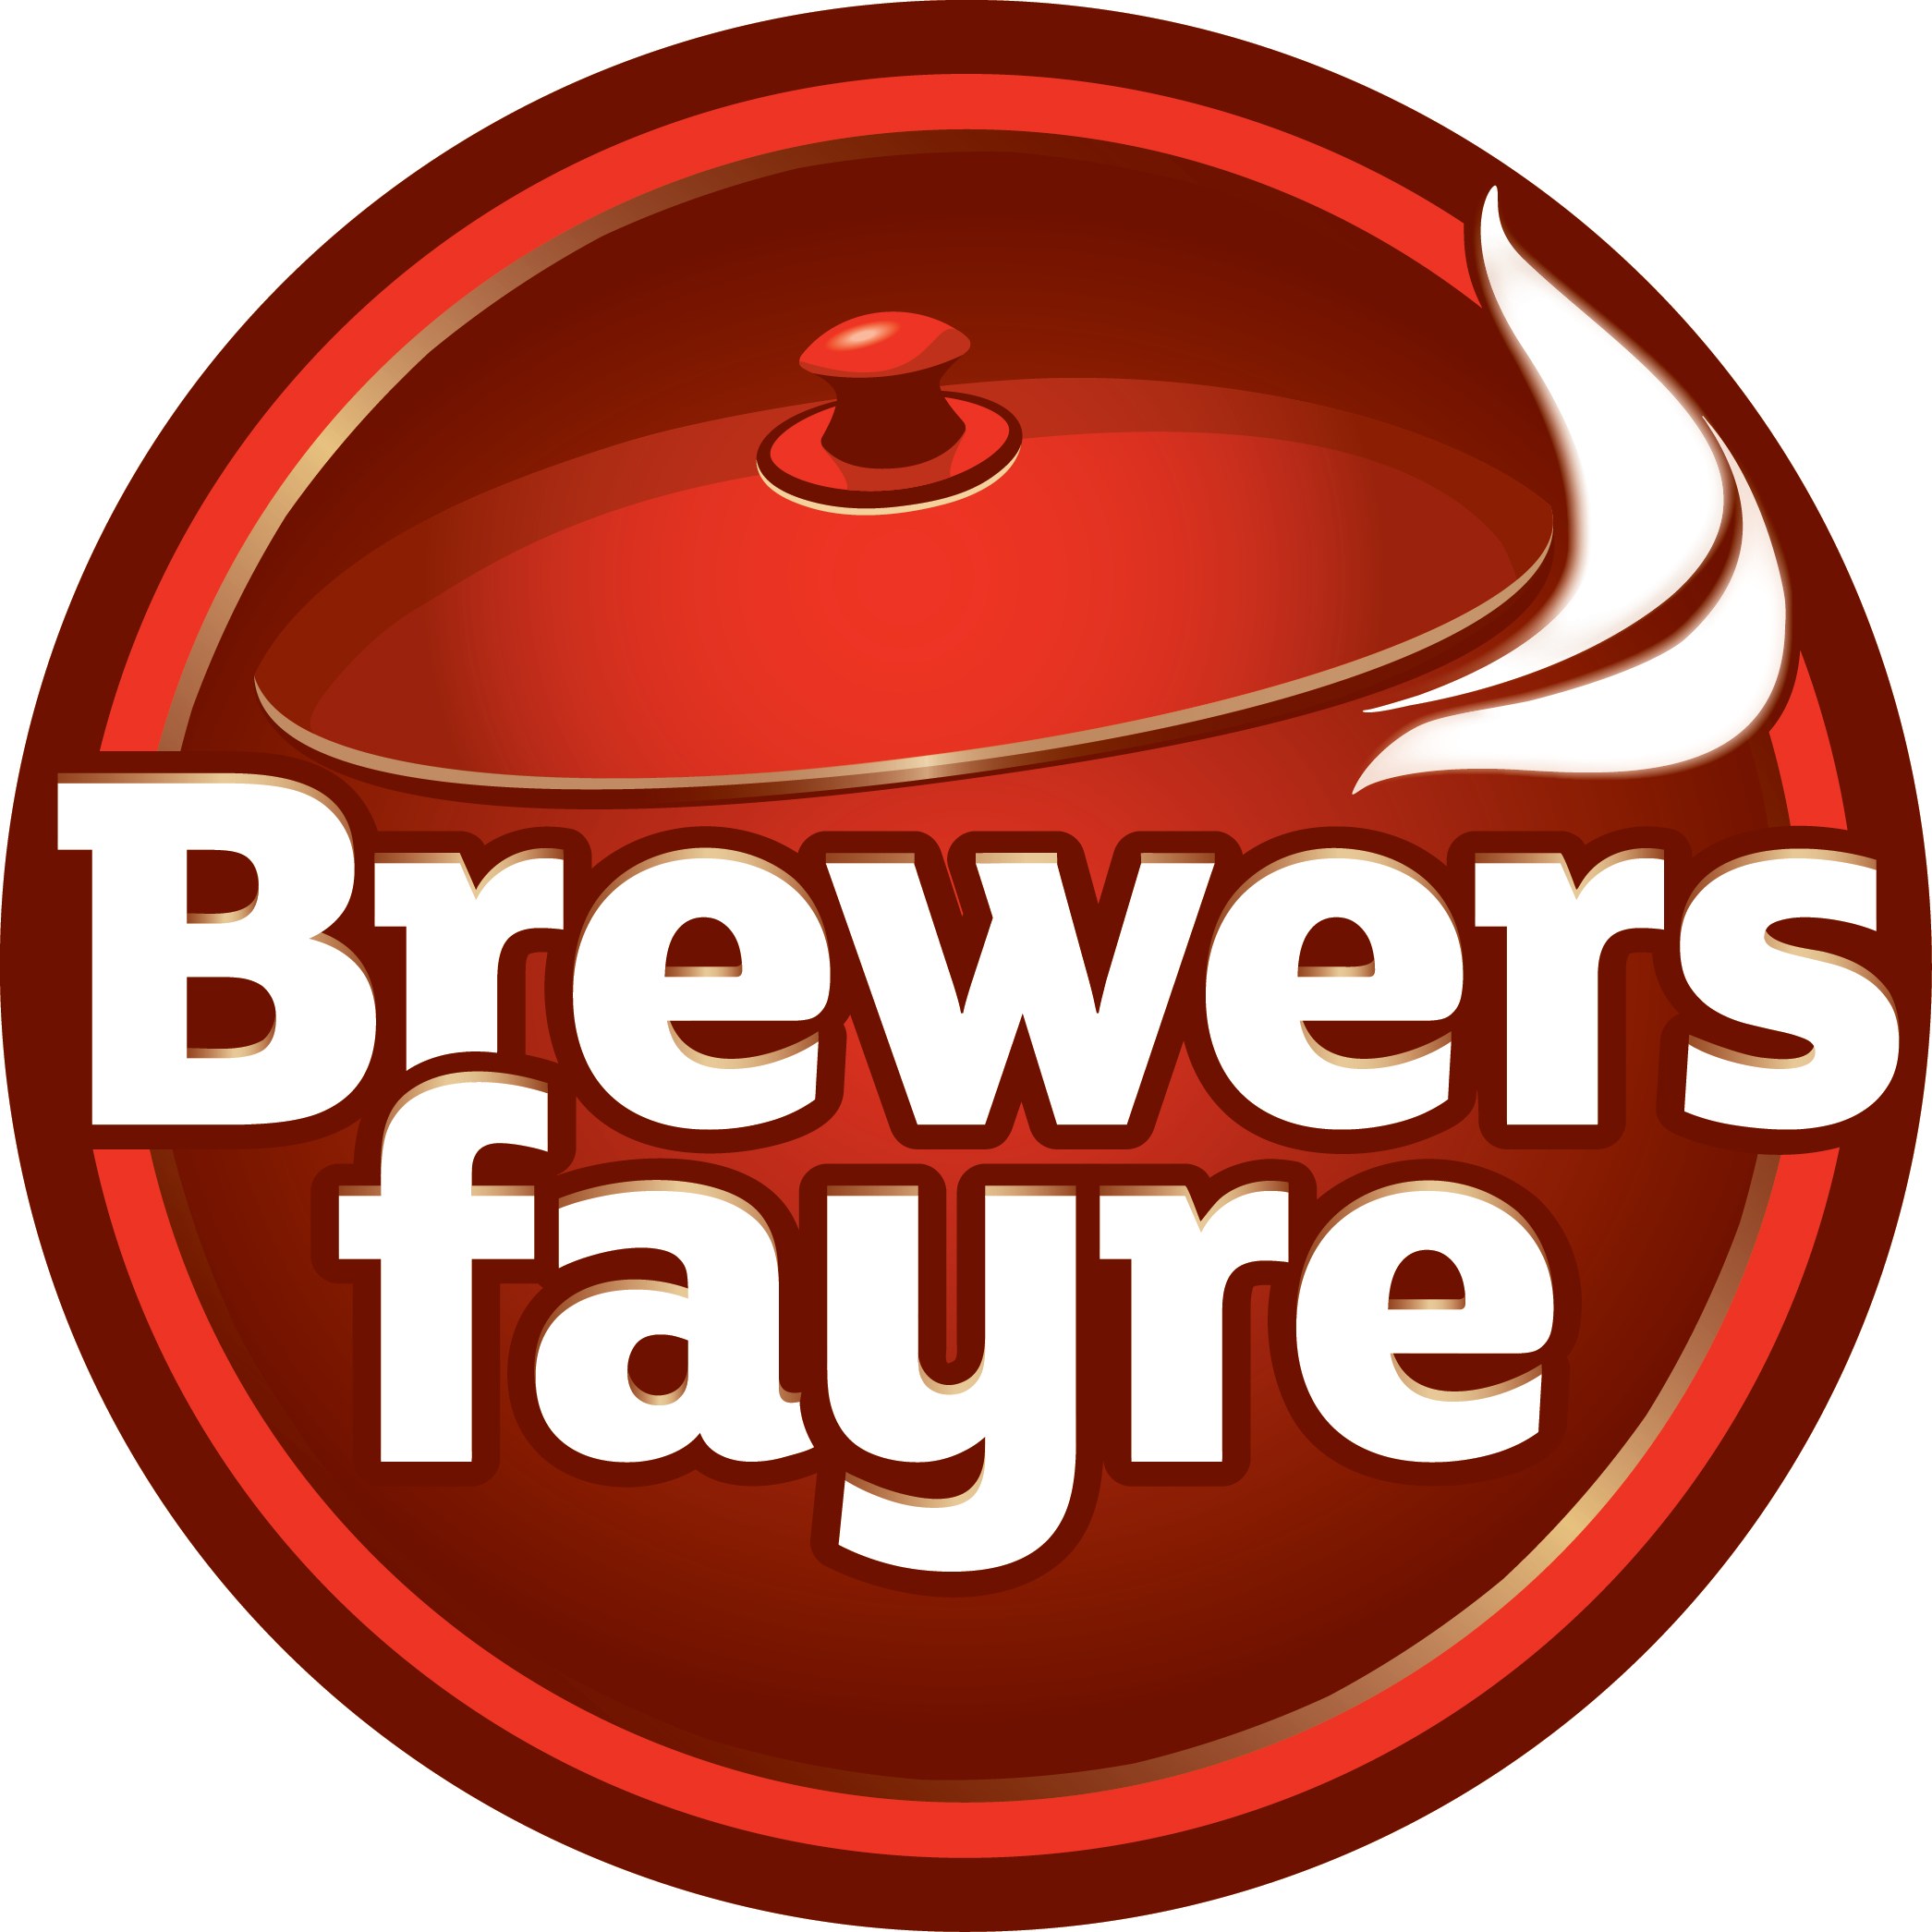 Brewers Fayre Ocean Park - Cardiff, South Glamorgan CF24 5JT - 02920 489675 | ShowMeLocal.com